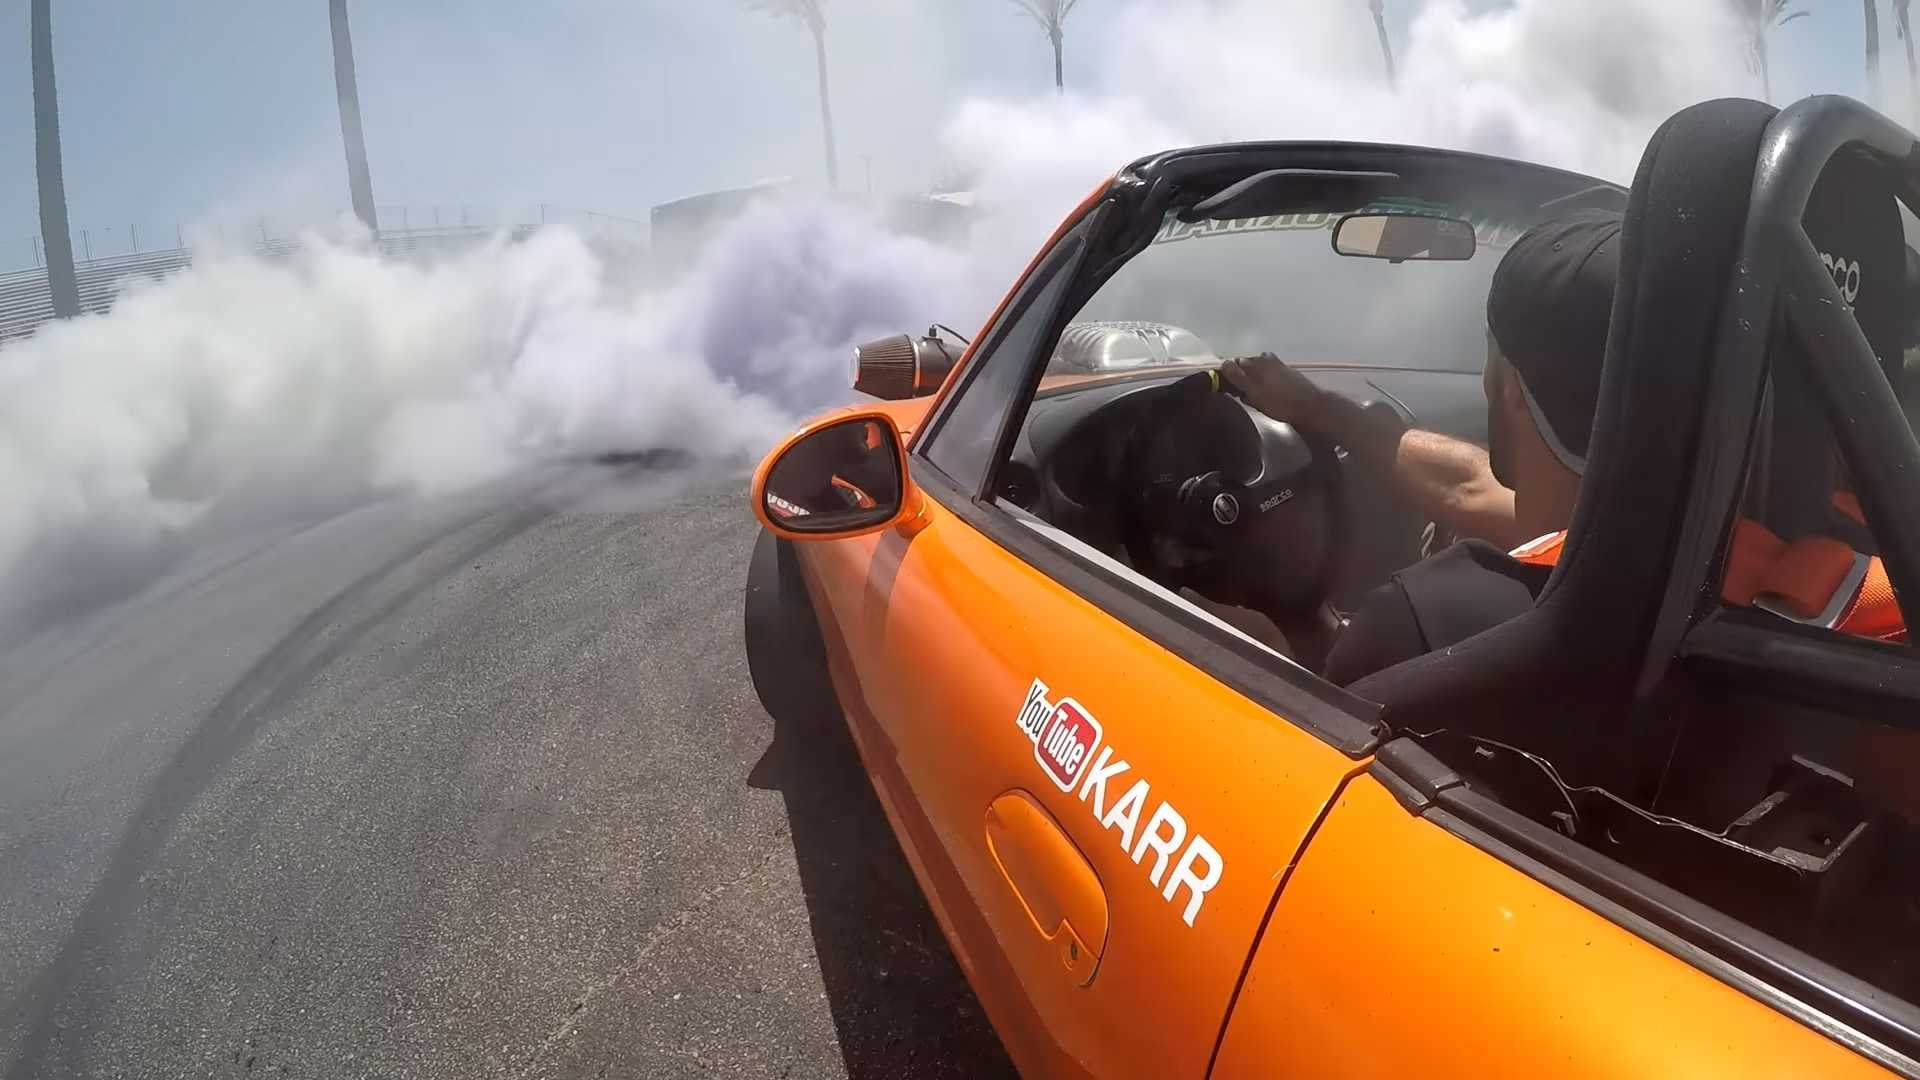 Hellcat-Swapped Mazda Miata Is Back To Rip Burnouts In 6th Gear